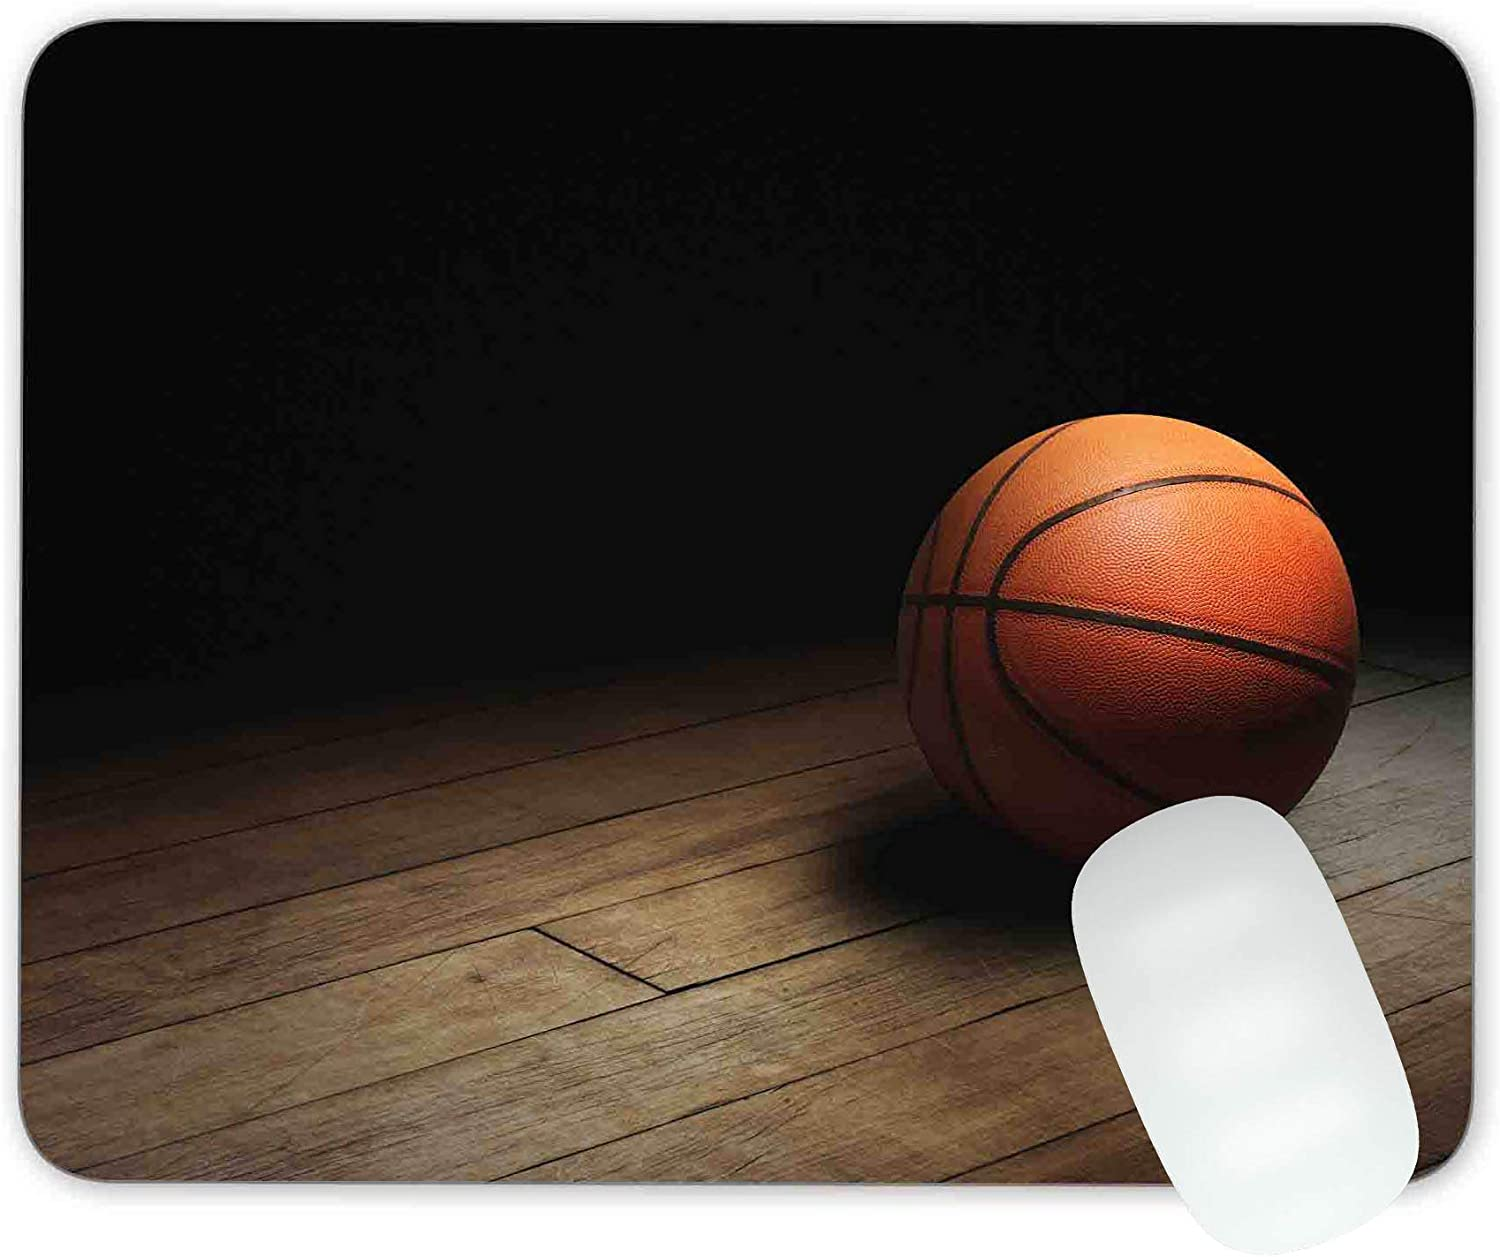 Timing/&weng Basketball on Court Mouse pad Gaming Mouse pad Mousepad Nonslip Rubber Backing